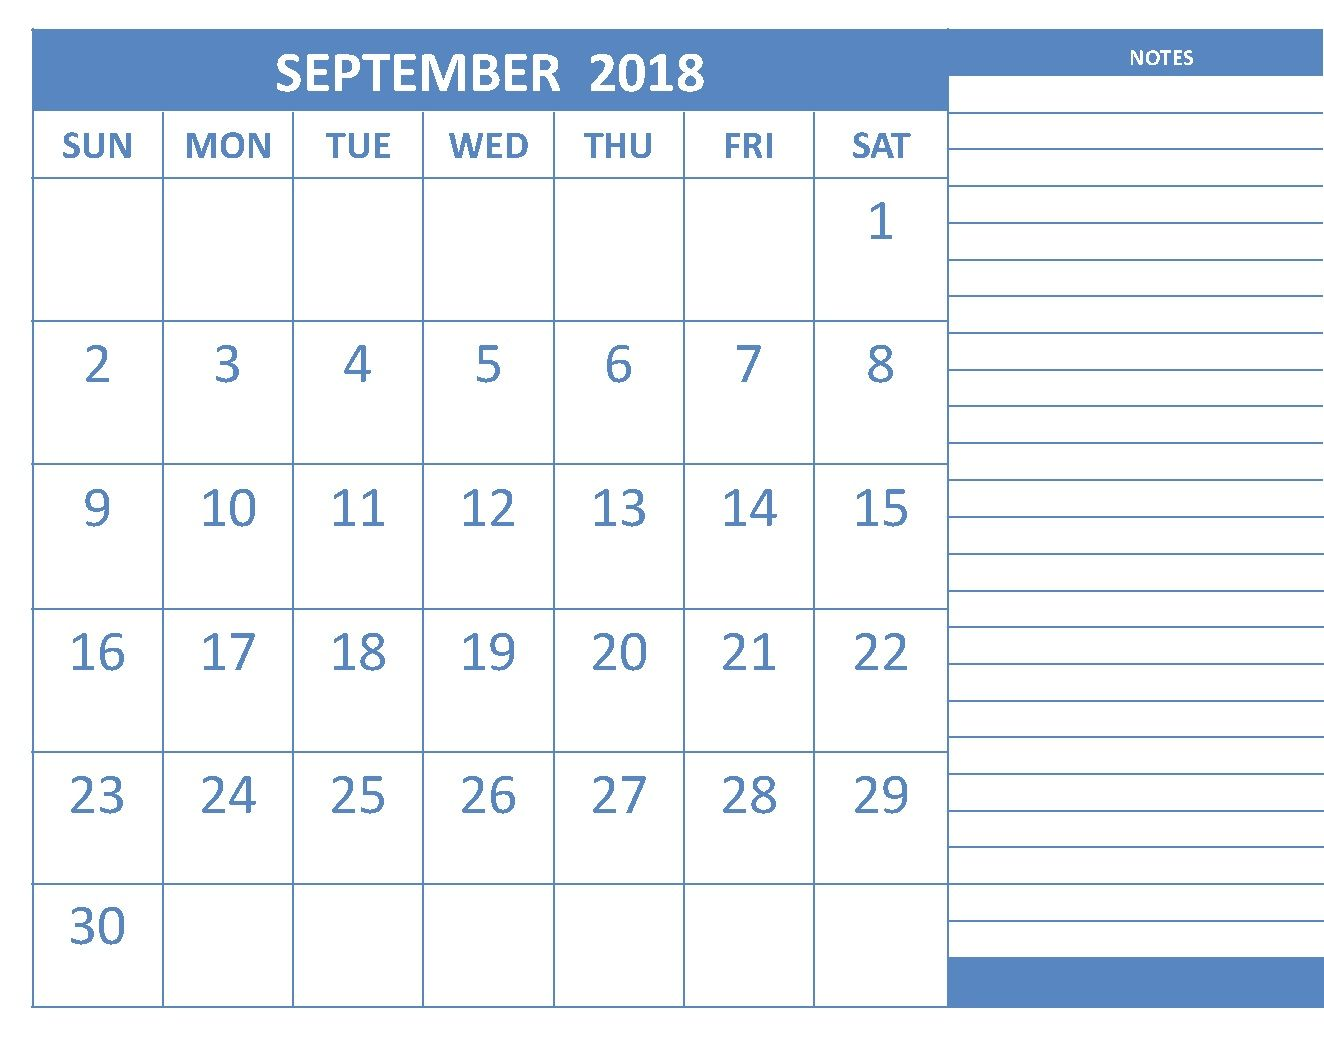 September 2018 Editable Calendar With Notes